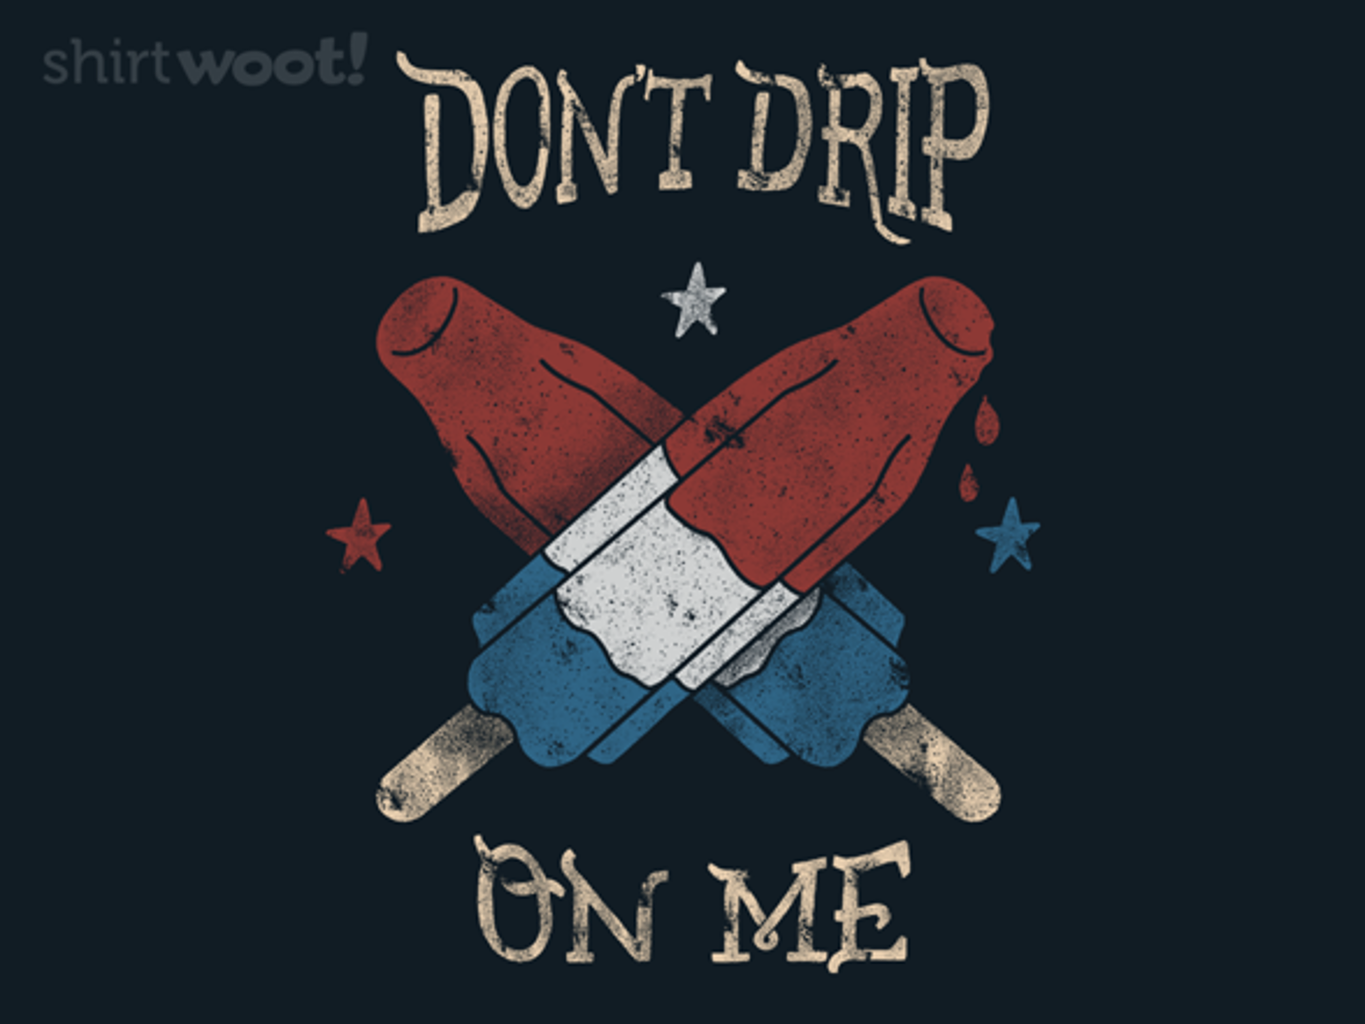 Woot!: Don't Drip